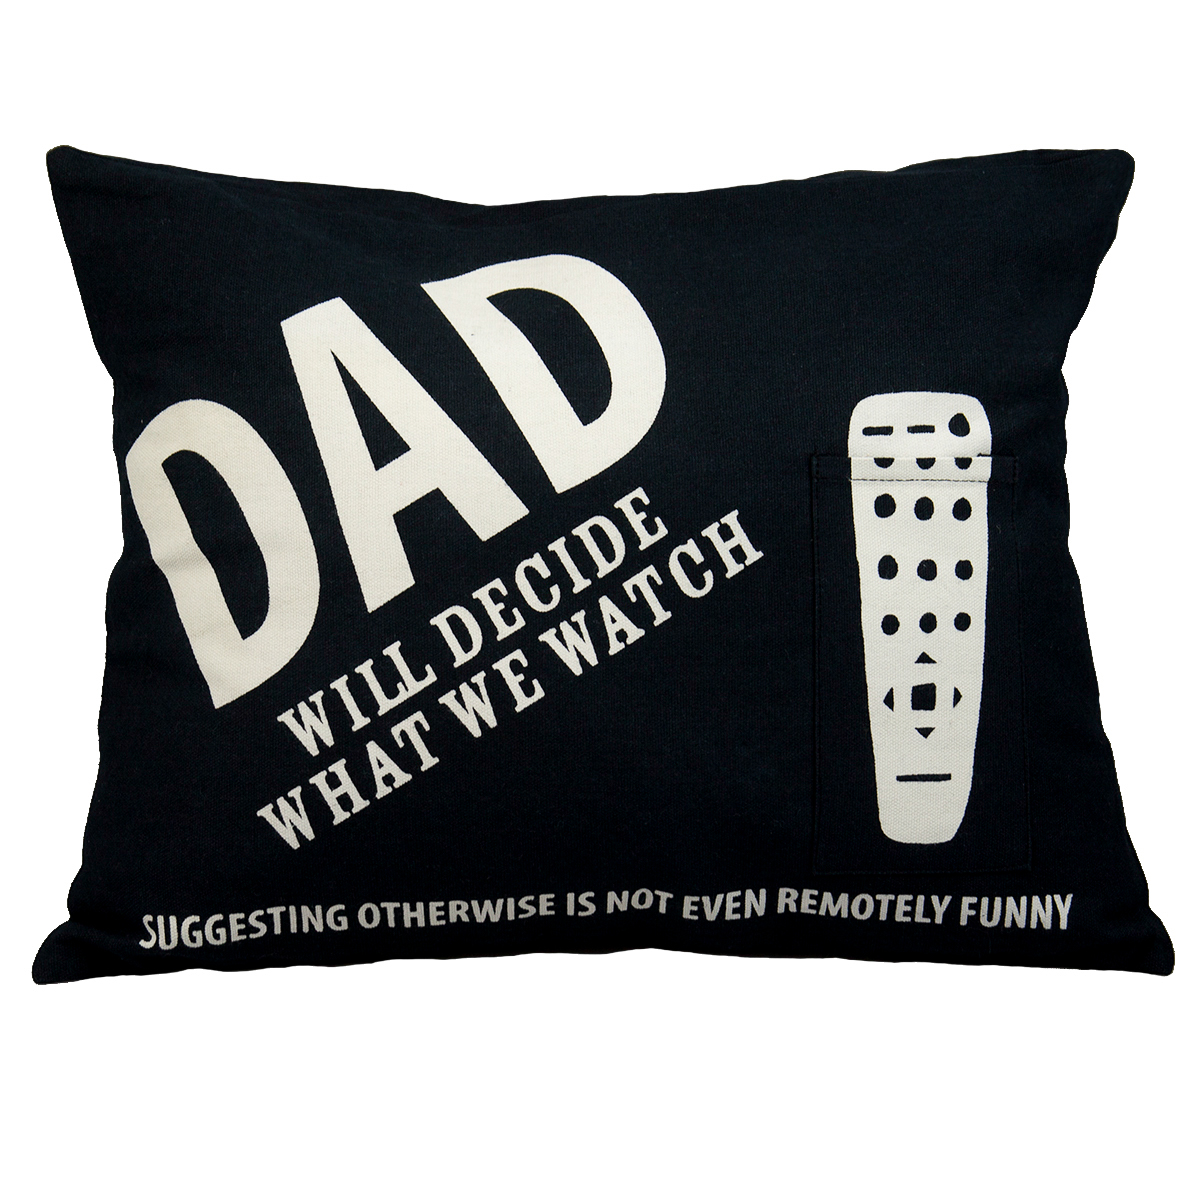 Enesco Dad's Remote Decorative Funny Throw Pillow 12x16 Lorrie Veasey Mom Couch